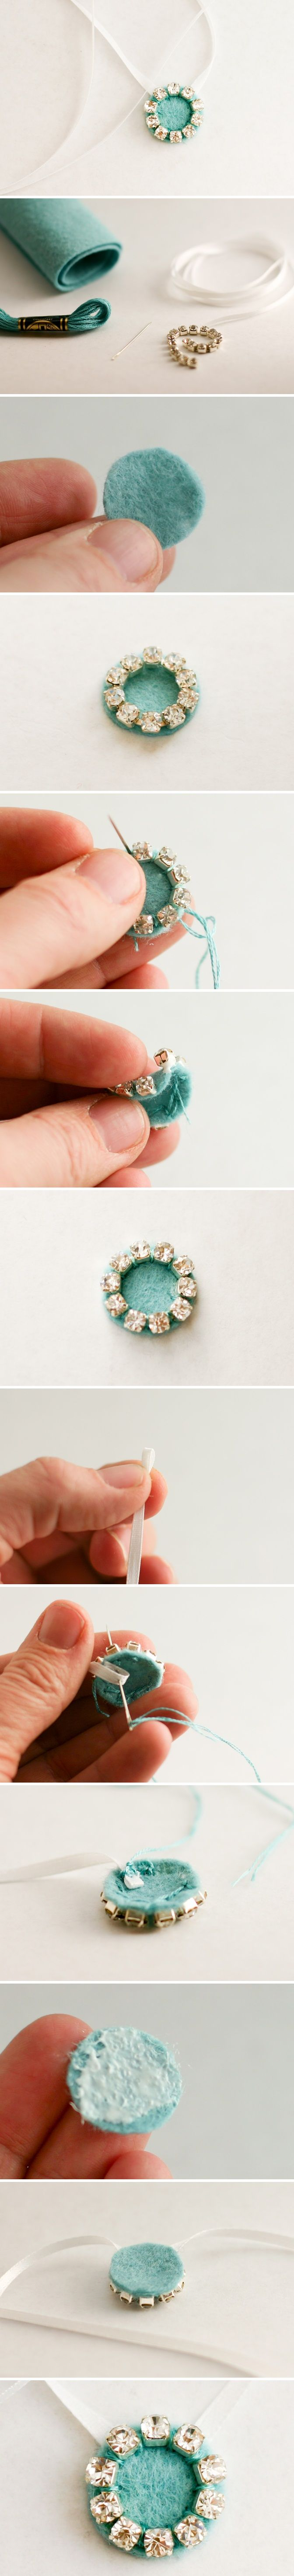 Day 23: A Rhinestone Circle - a diy pendant necklace